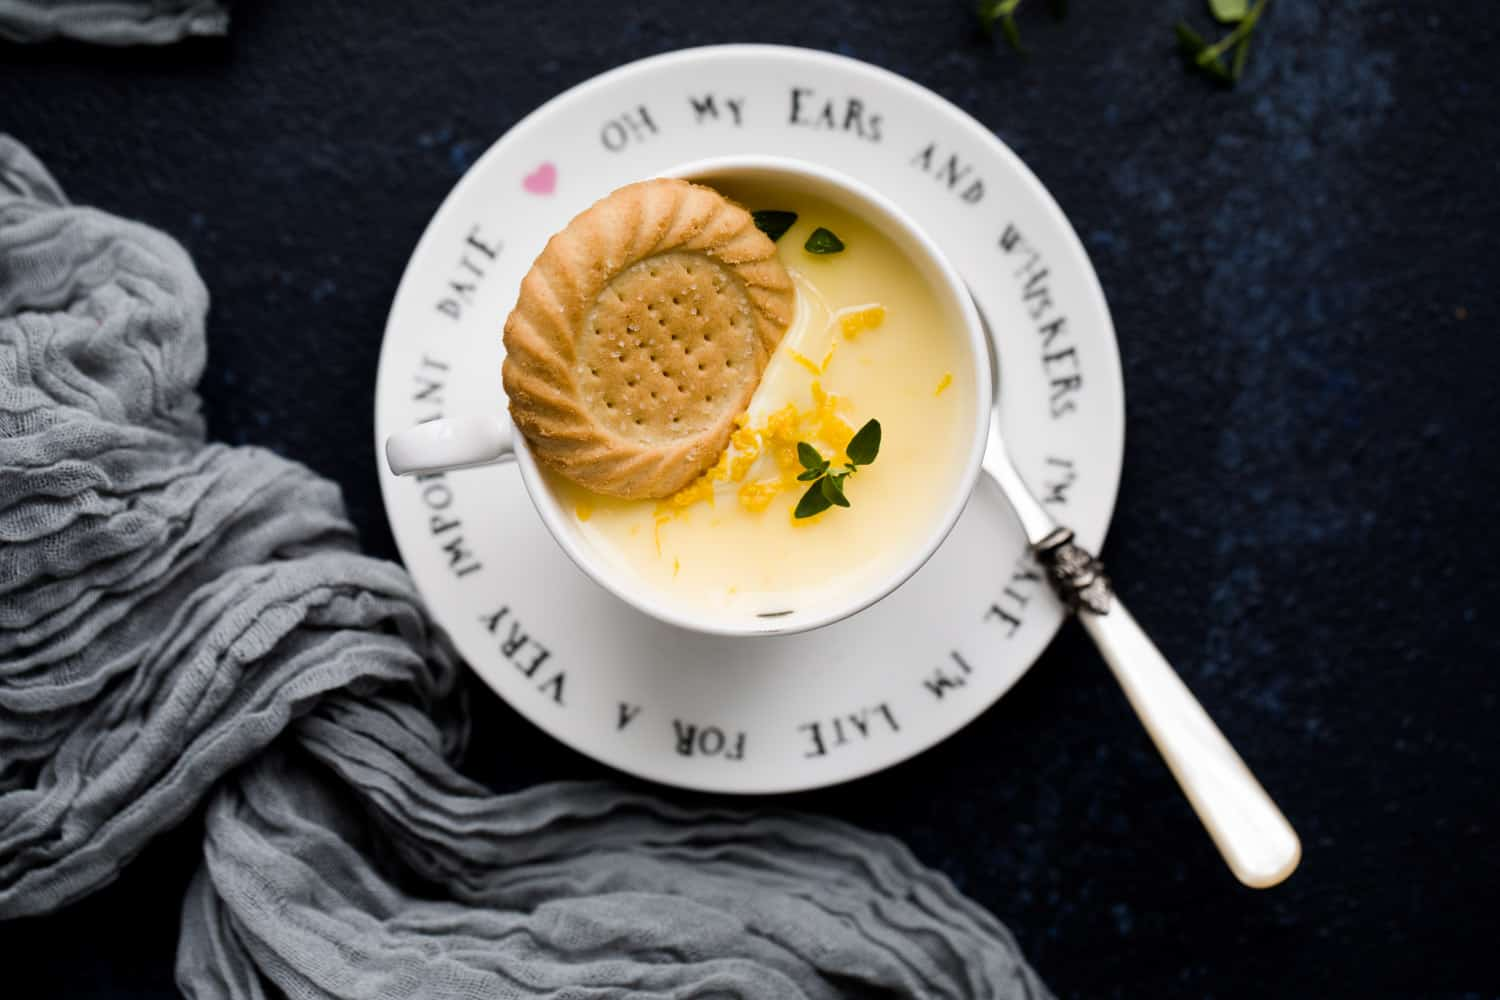 A lemon posset dessert in a teacup with a shortbread biscuit balanced on top